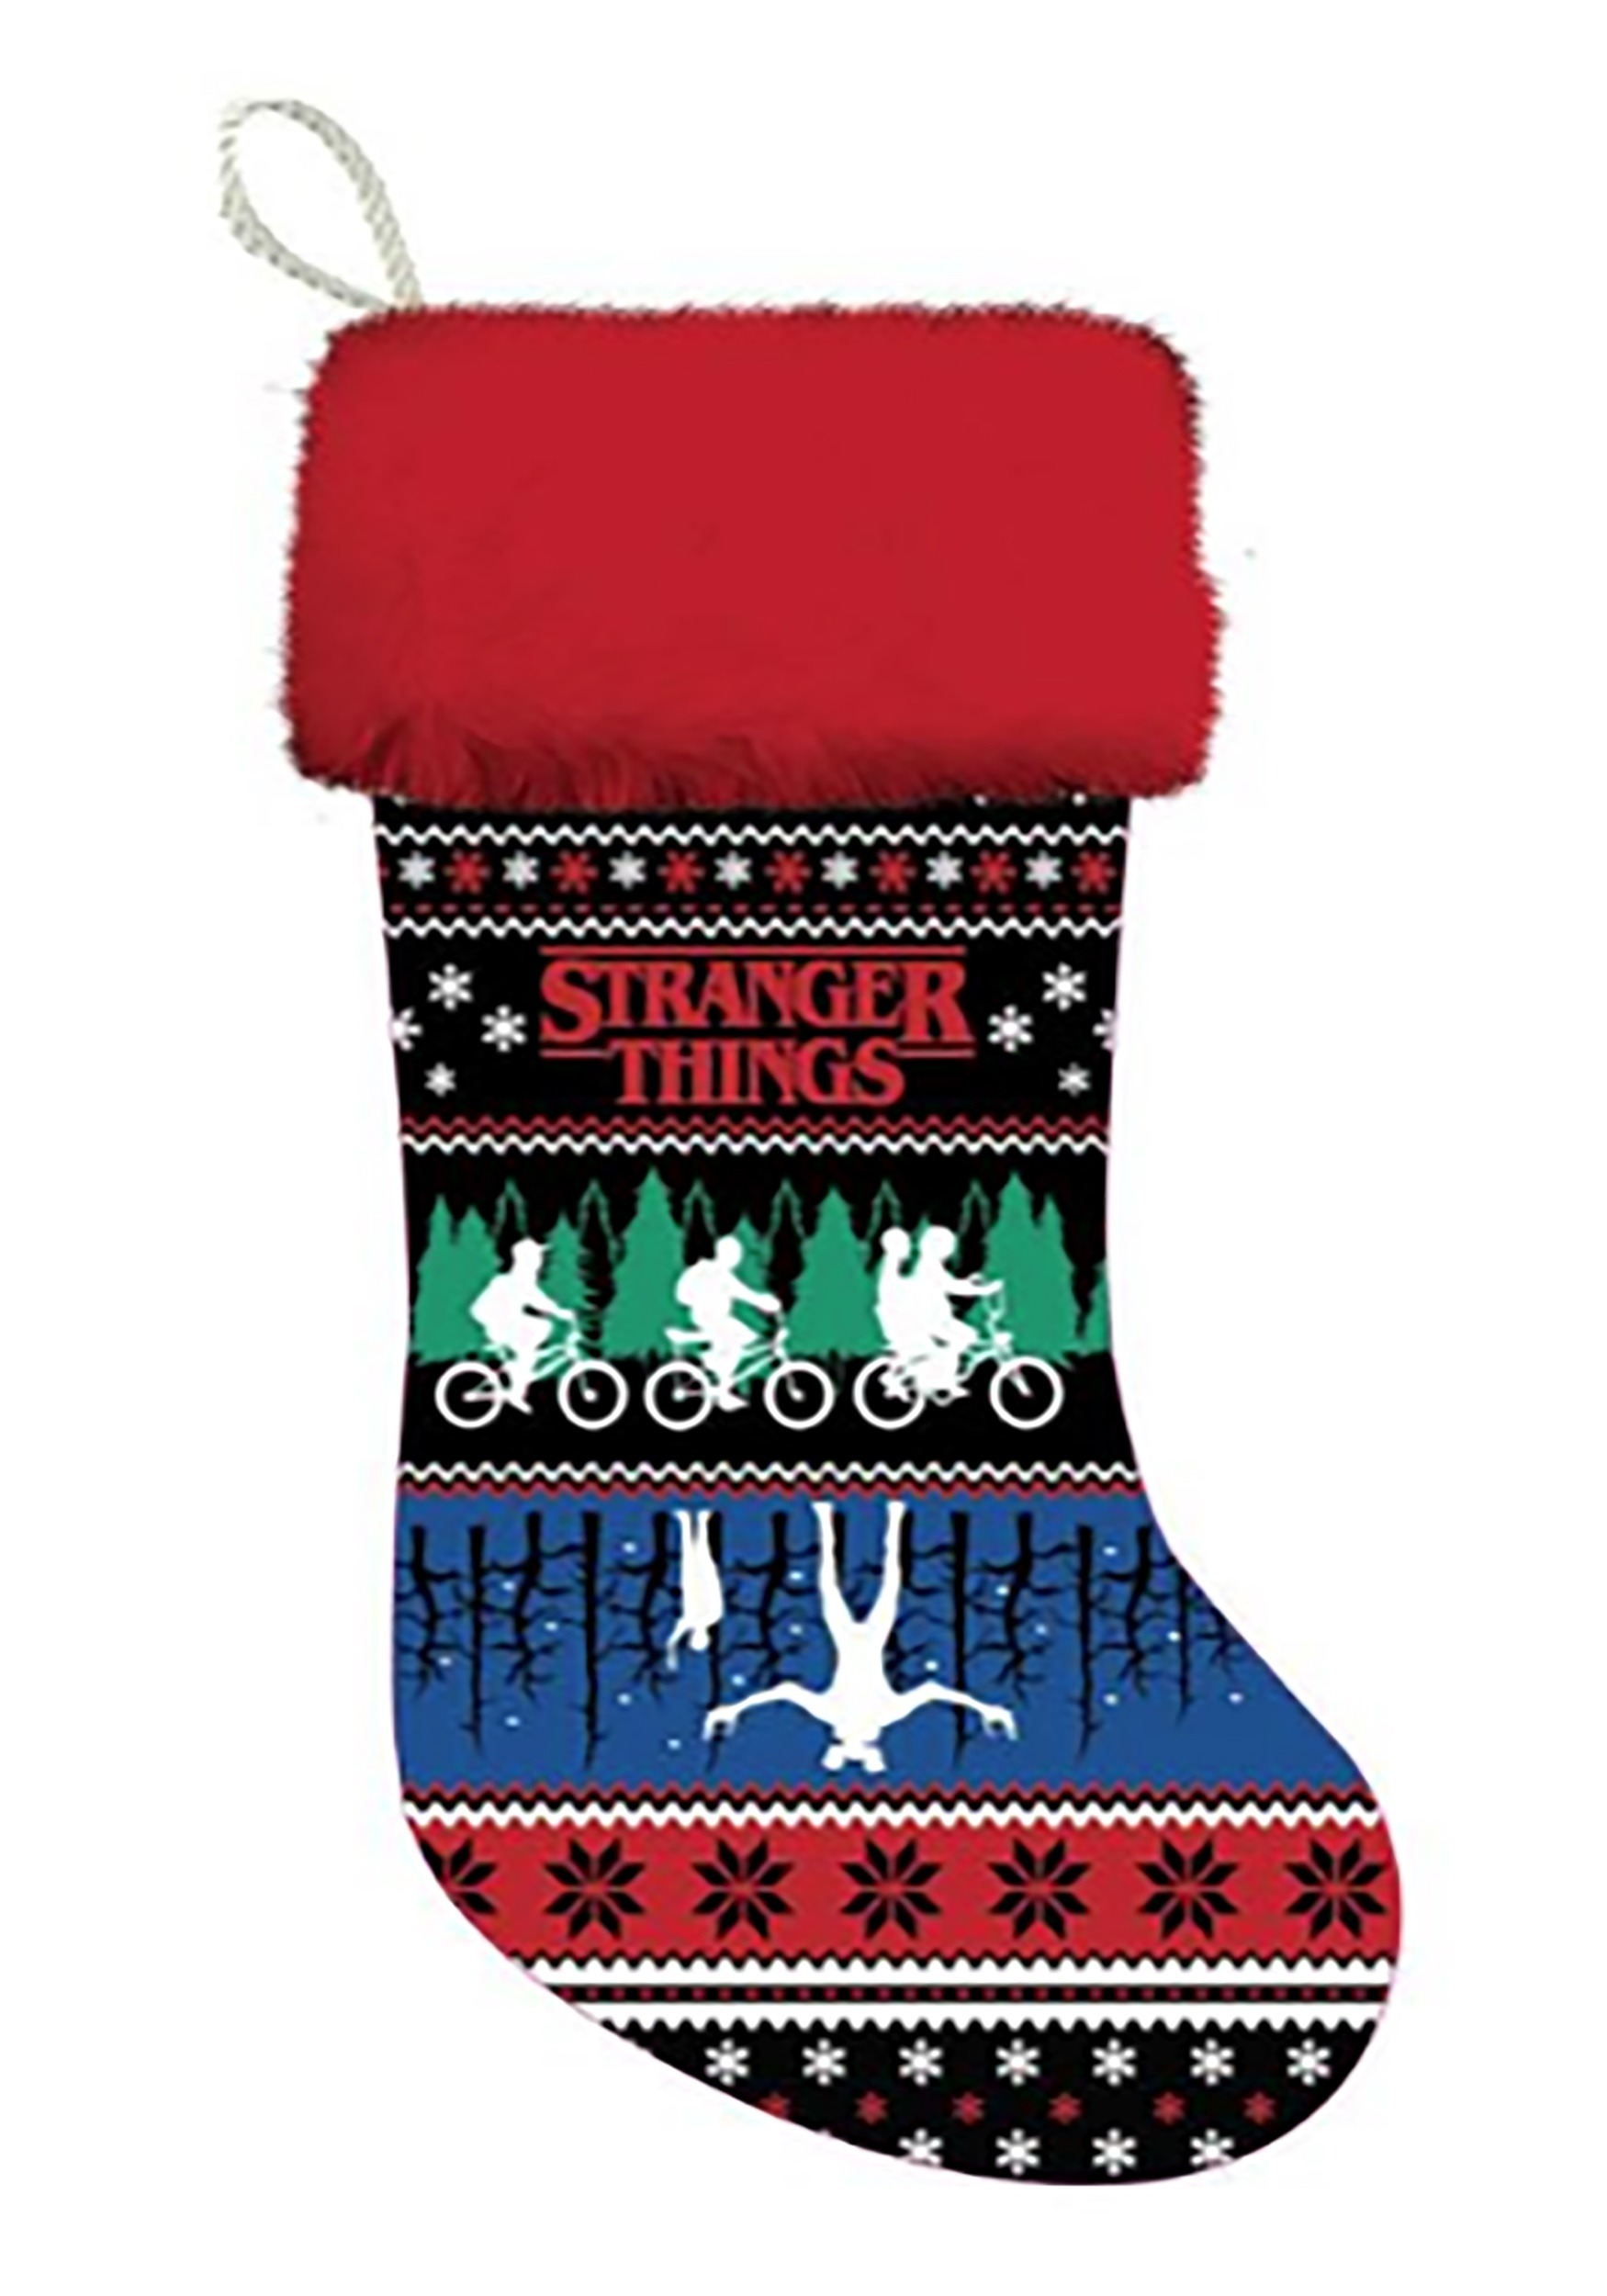 A Stranger Things Christmas.Stranger Things 19 Ugly Sweater Design Stocking